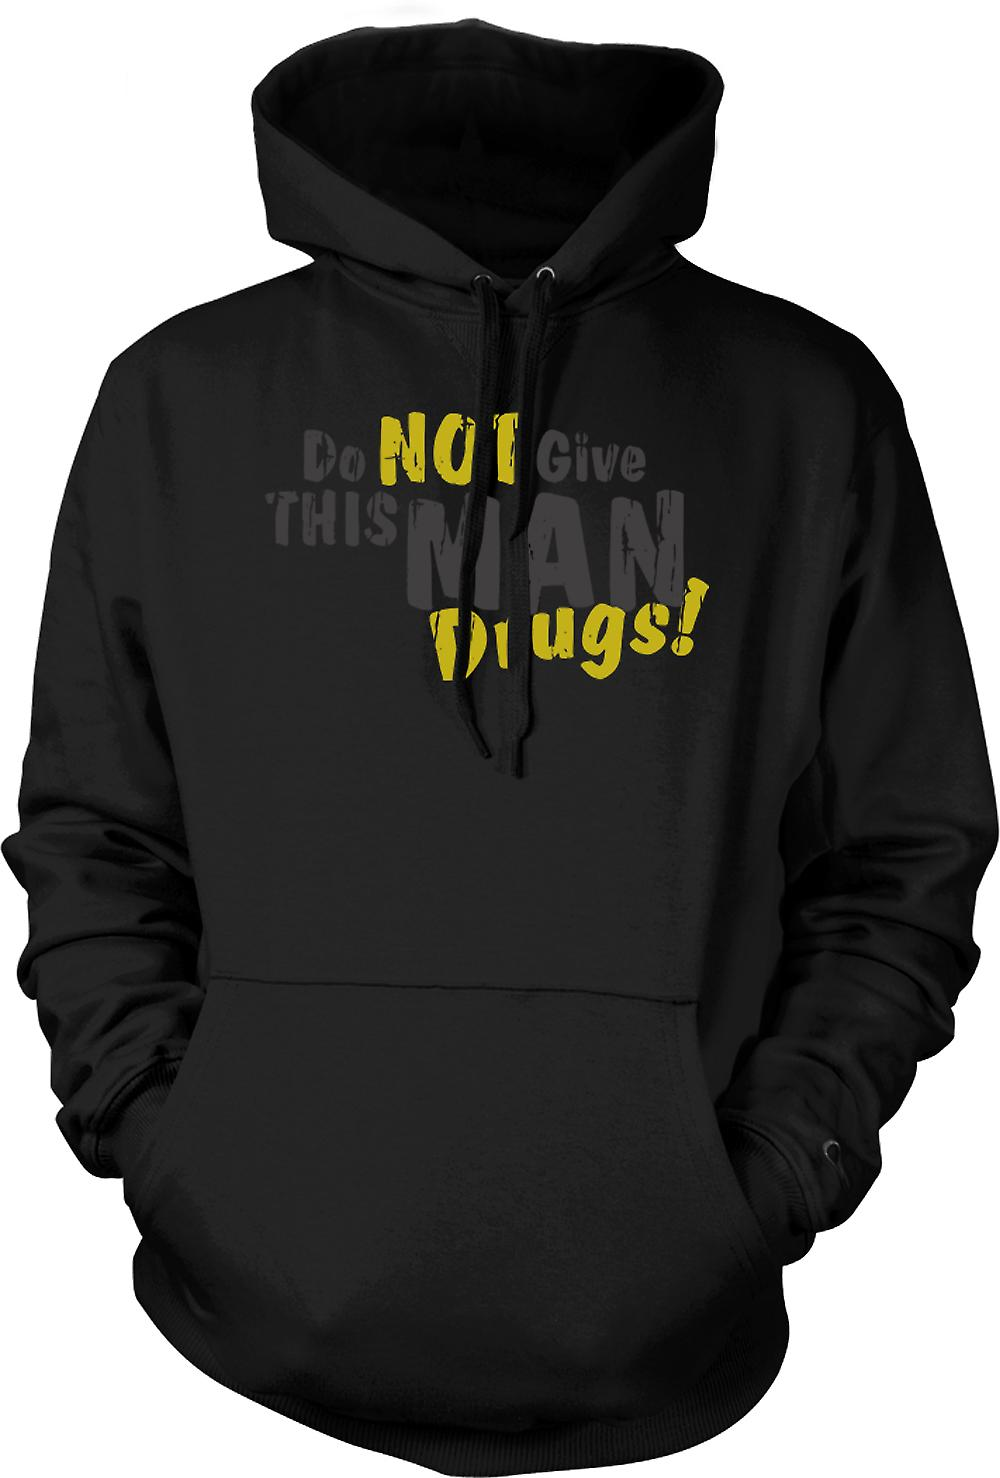 Mens Hoodie - Do Not Give This Man Drugs - Funny